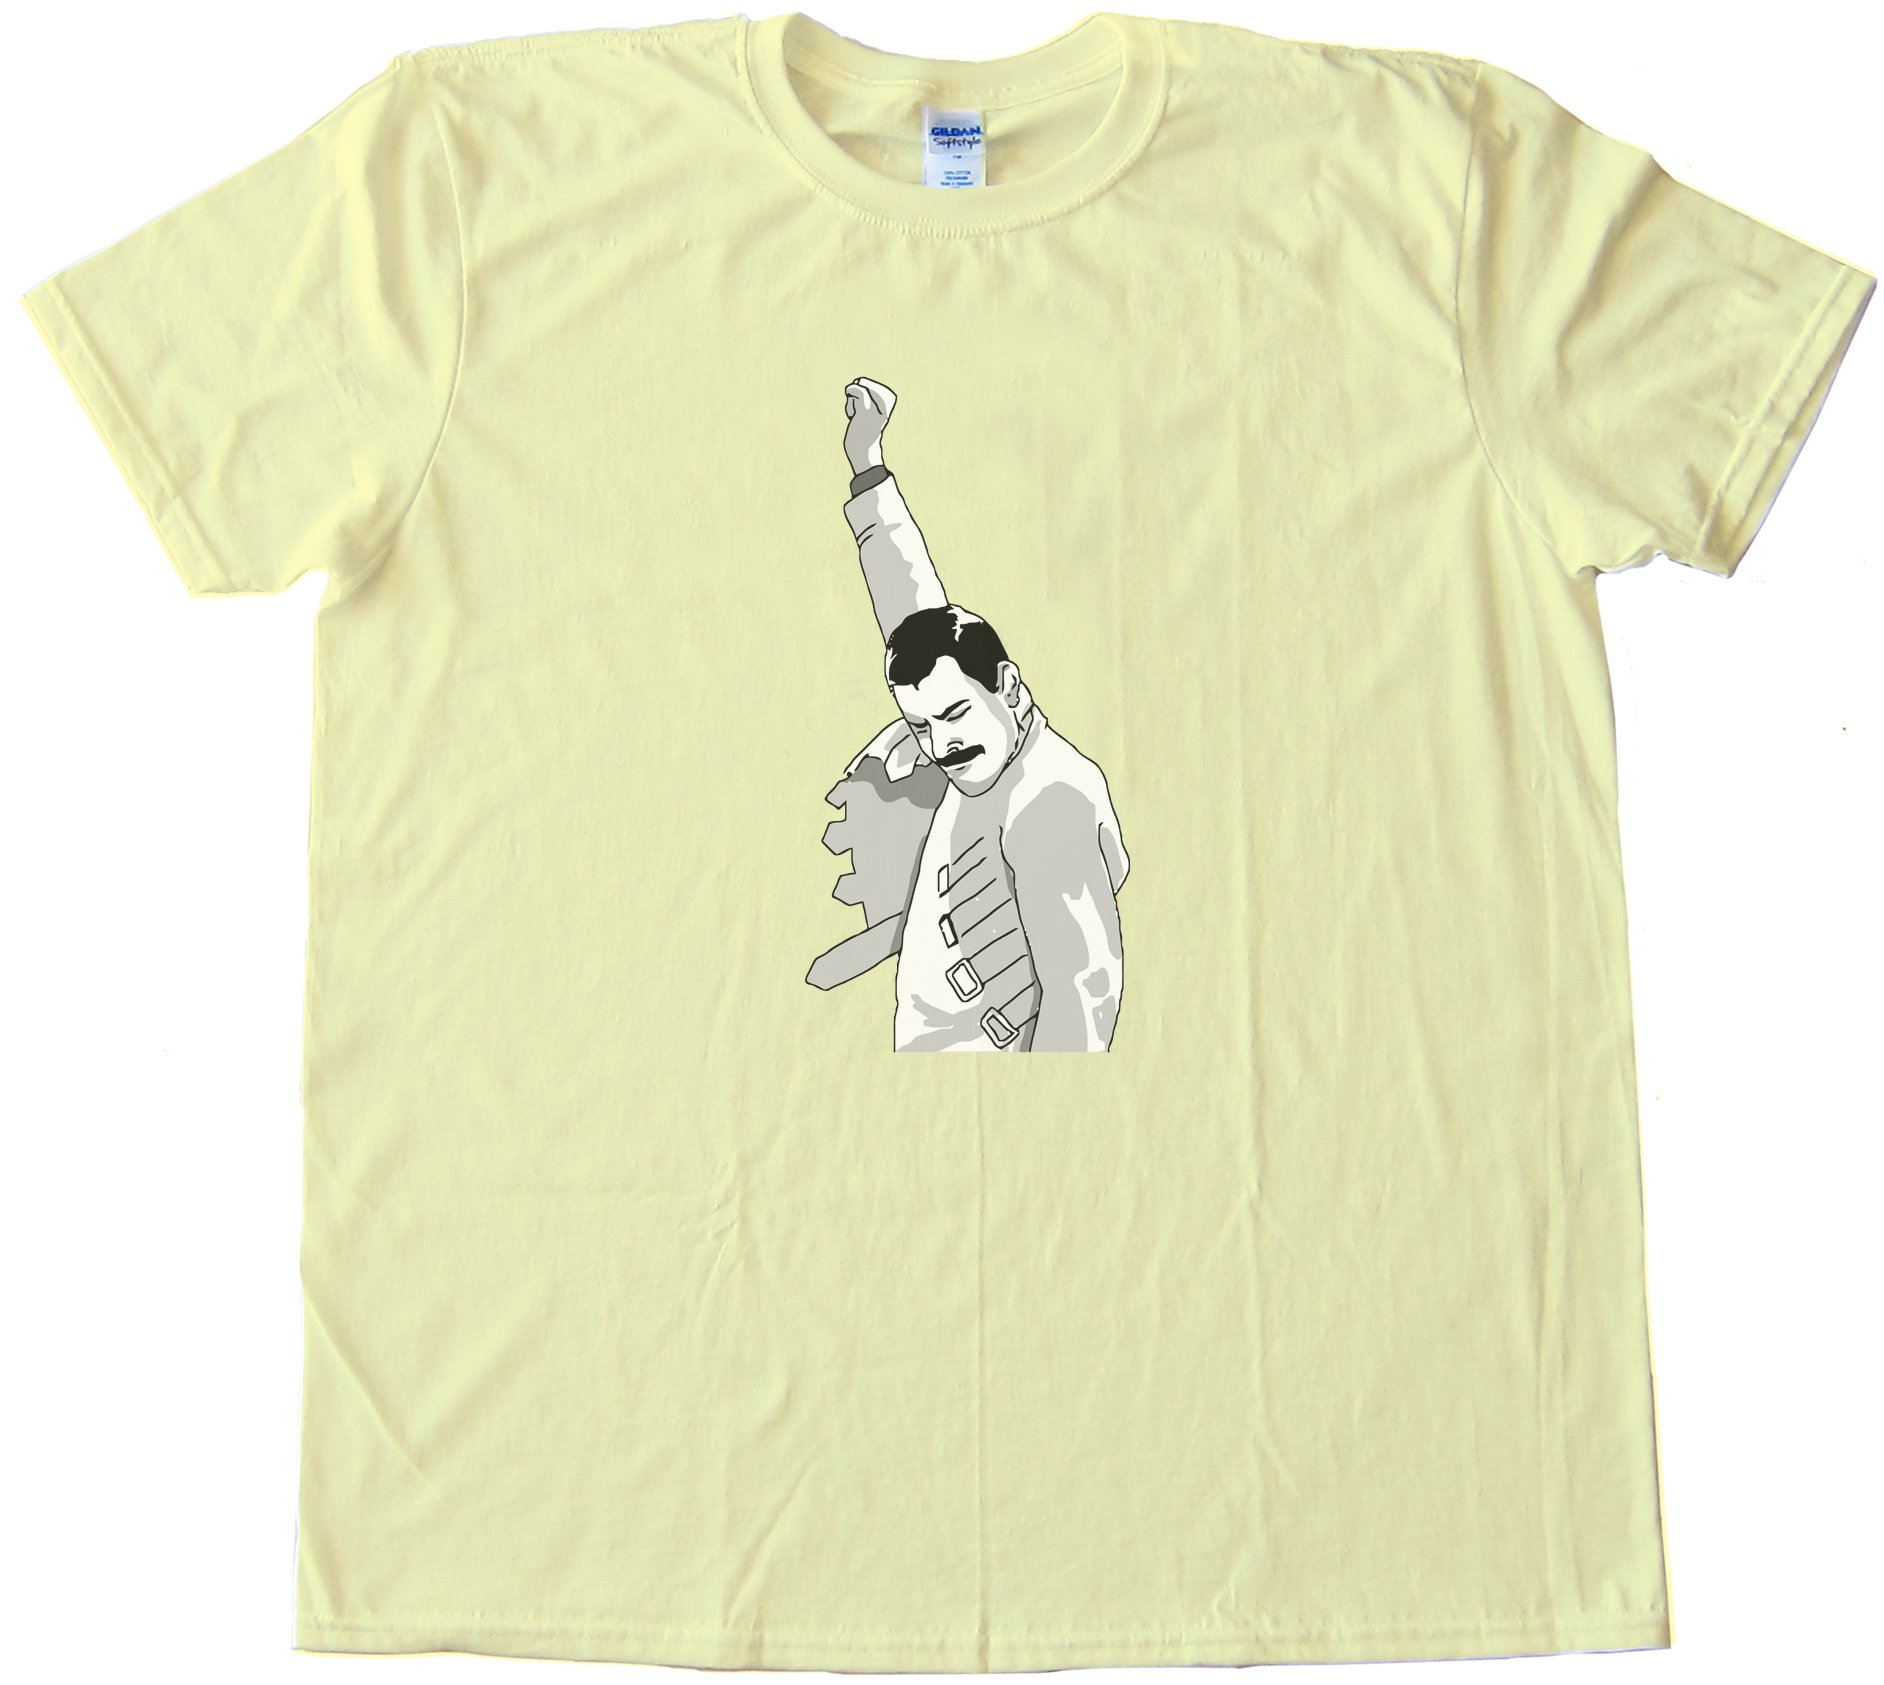 Freddy Mercury - Lead Singer Of The Rock & Roll Band Queen Tee Shirt